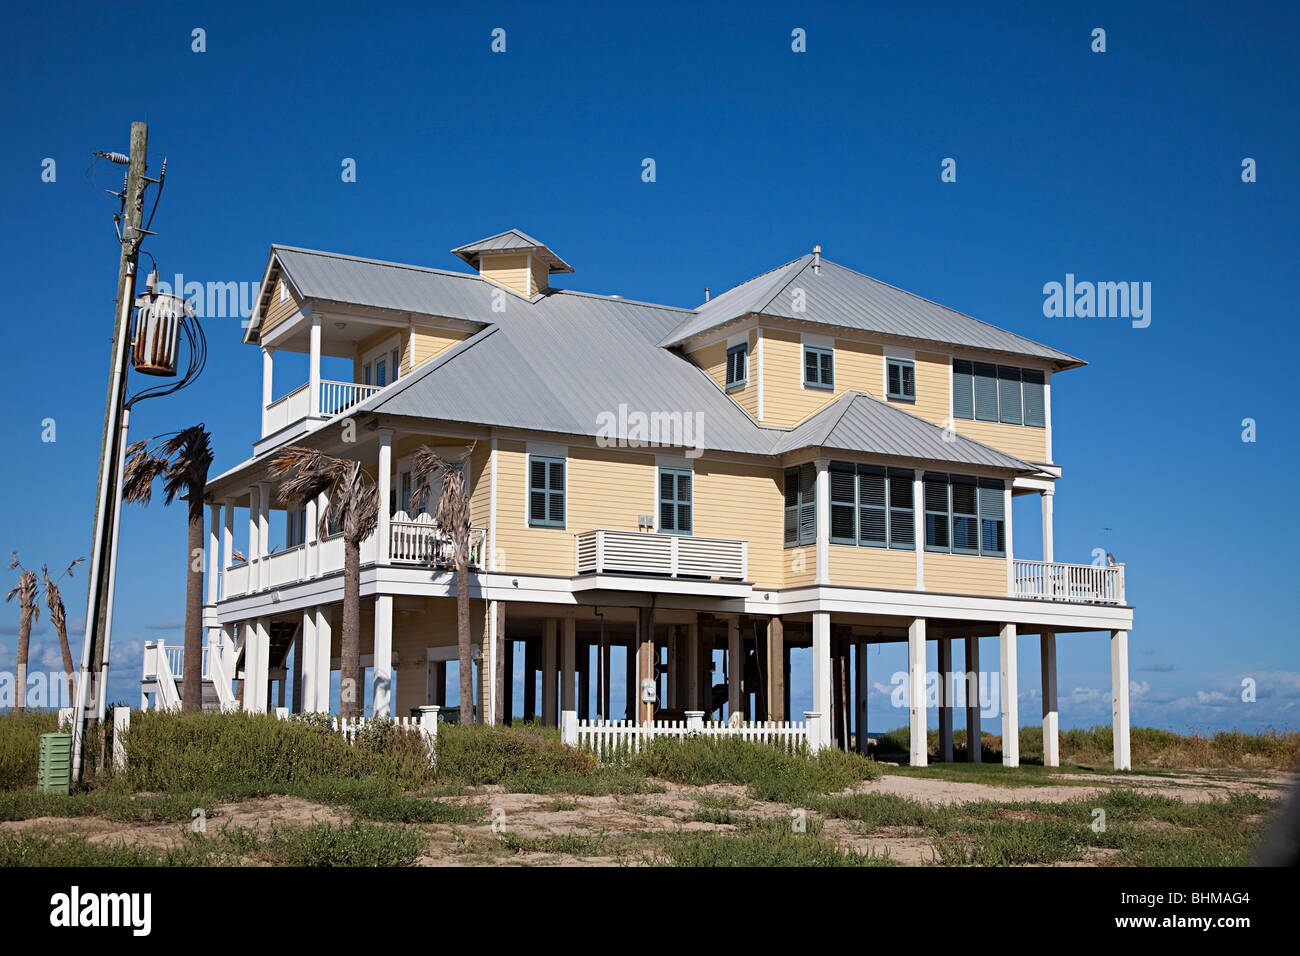 Wooden house on stilts on beach front galveston texas usa for Beach house plans galveston